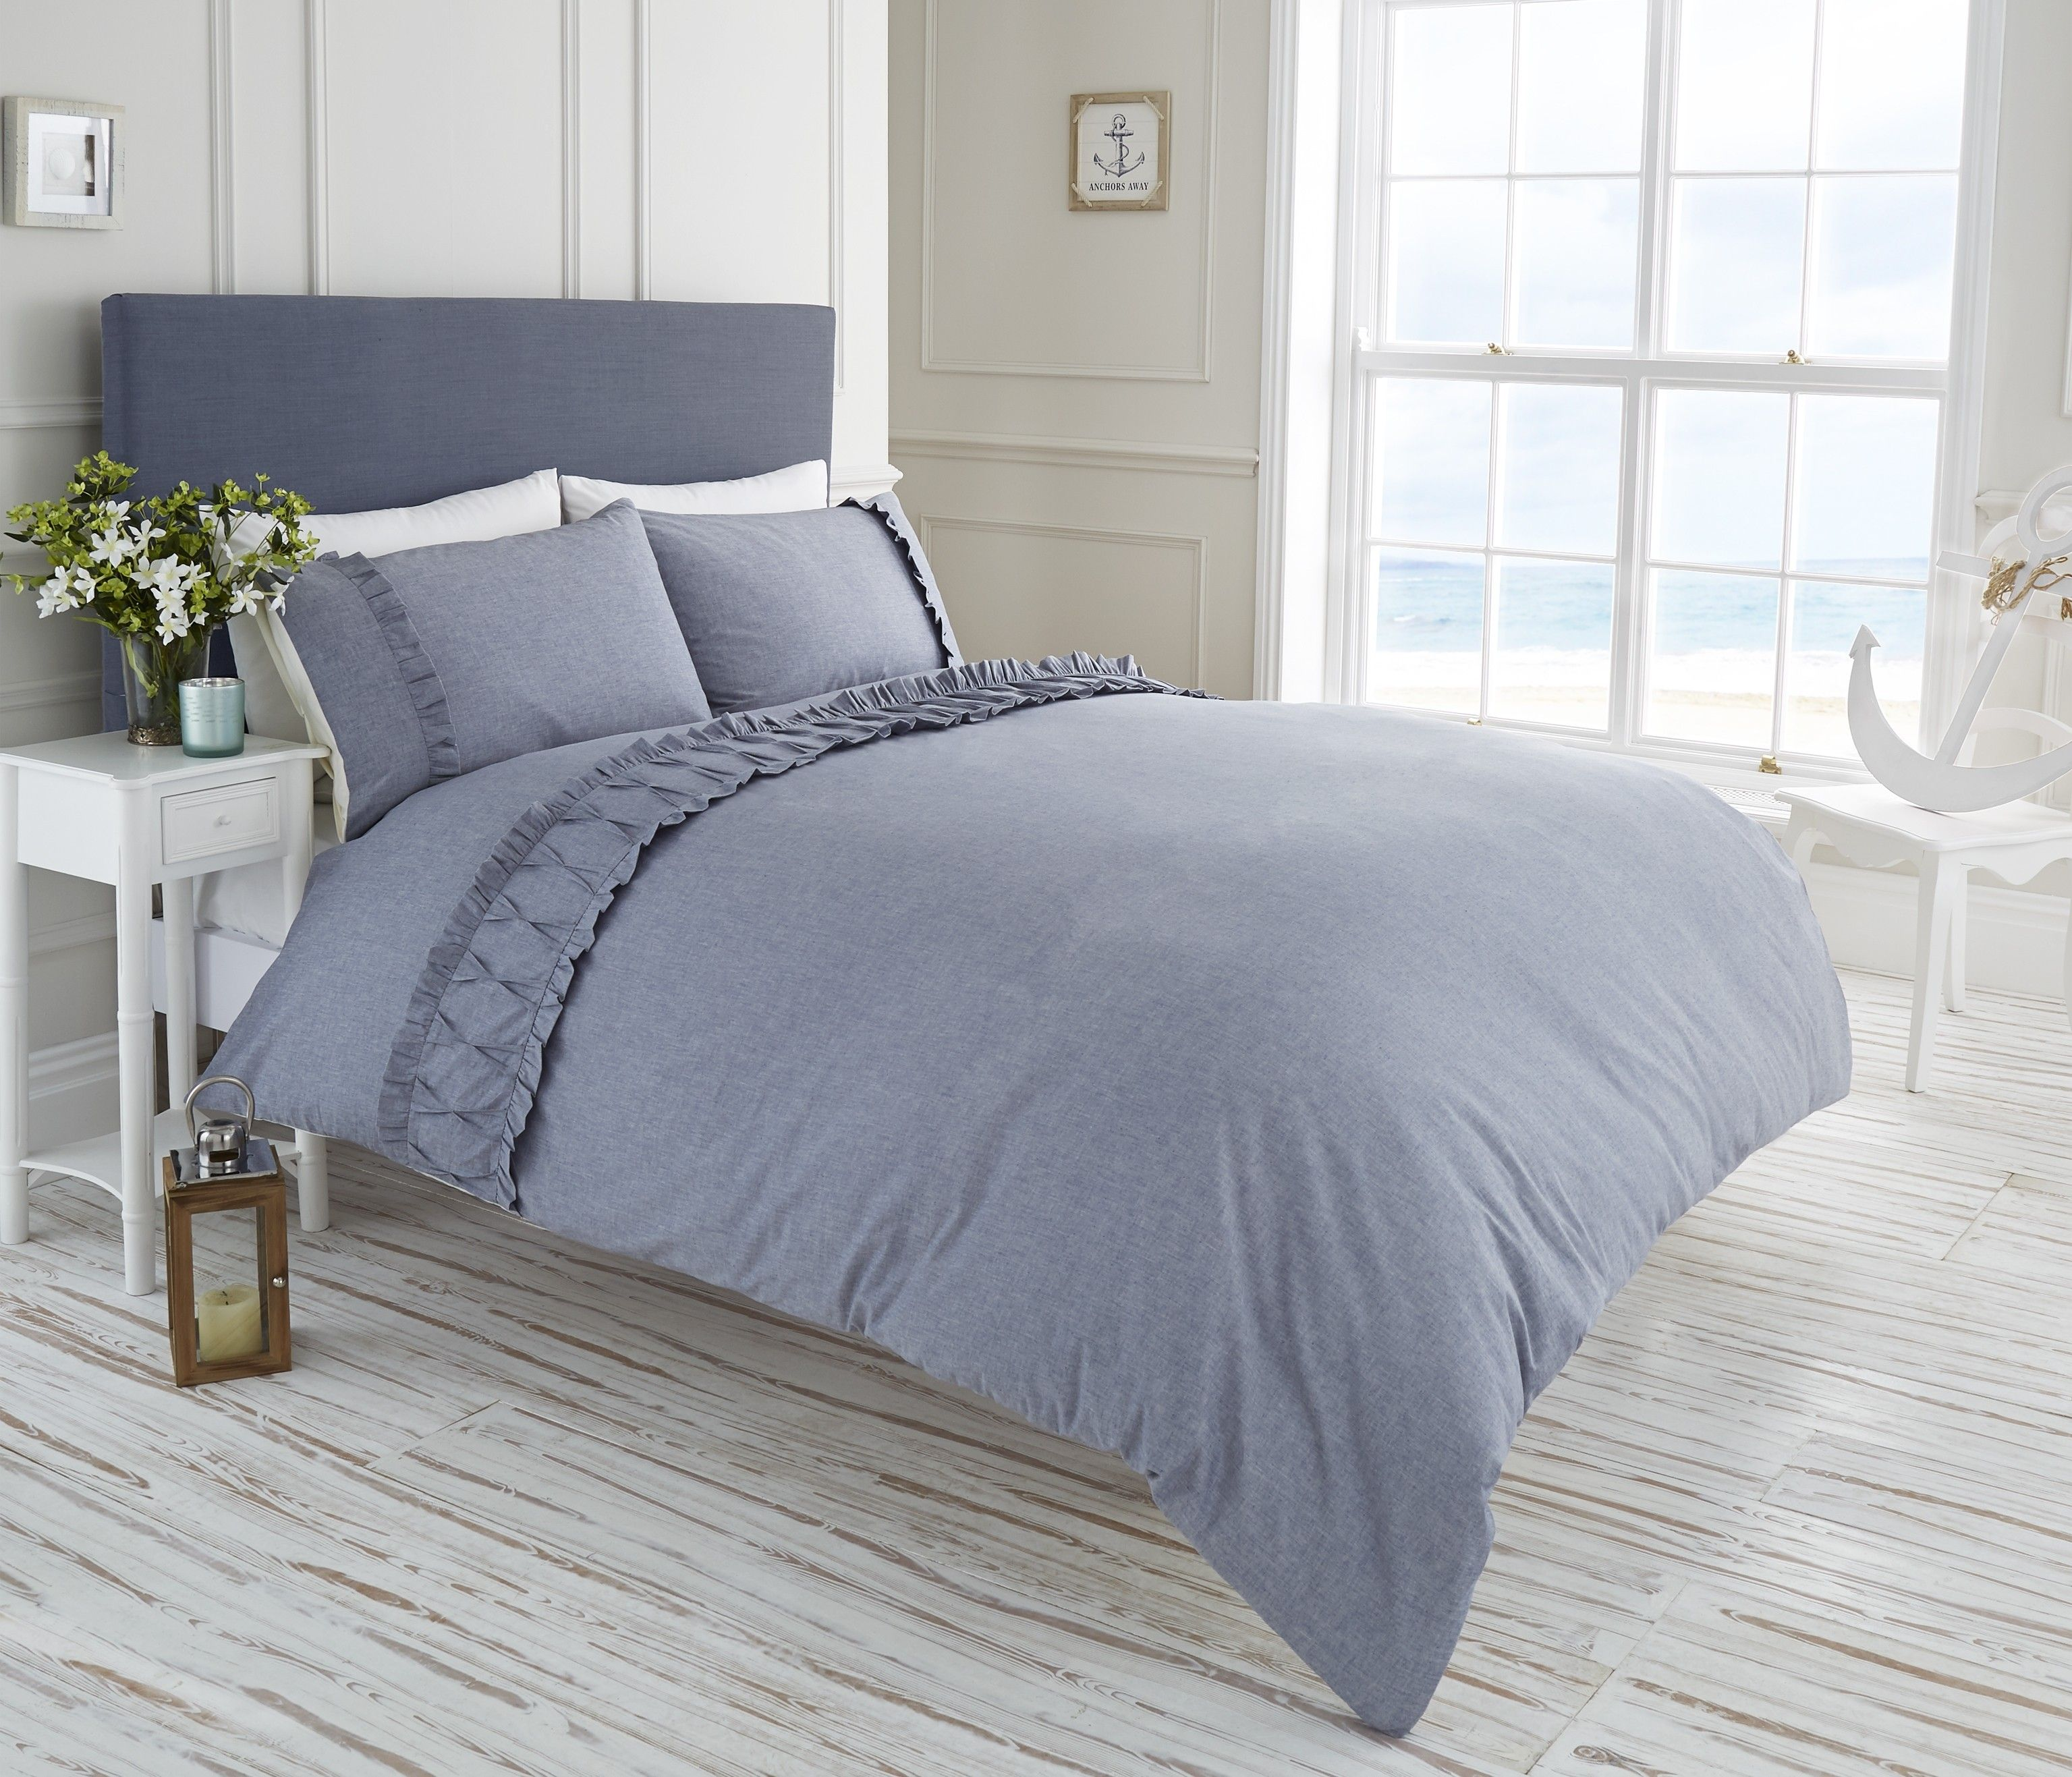 Life From Coloroll Monaco Chambray Duvet Set Denim Ponden Homes Pondenhome Home